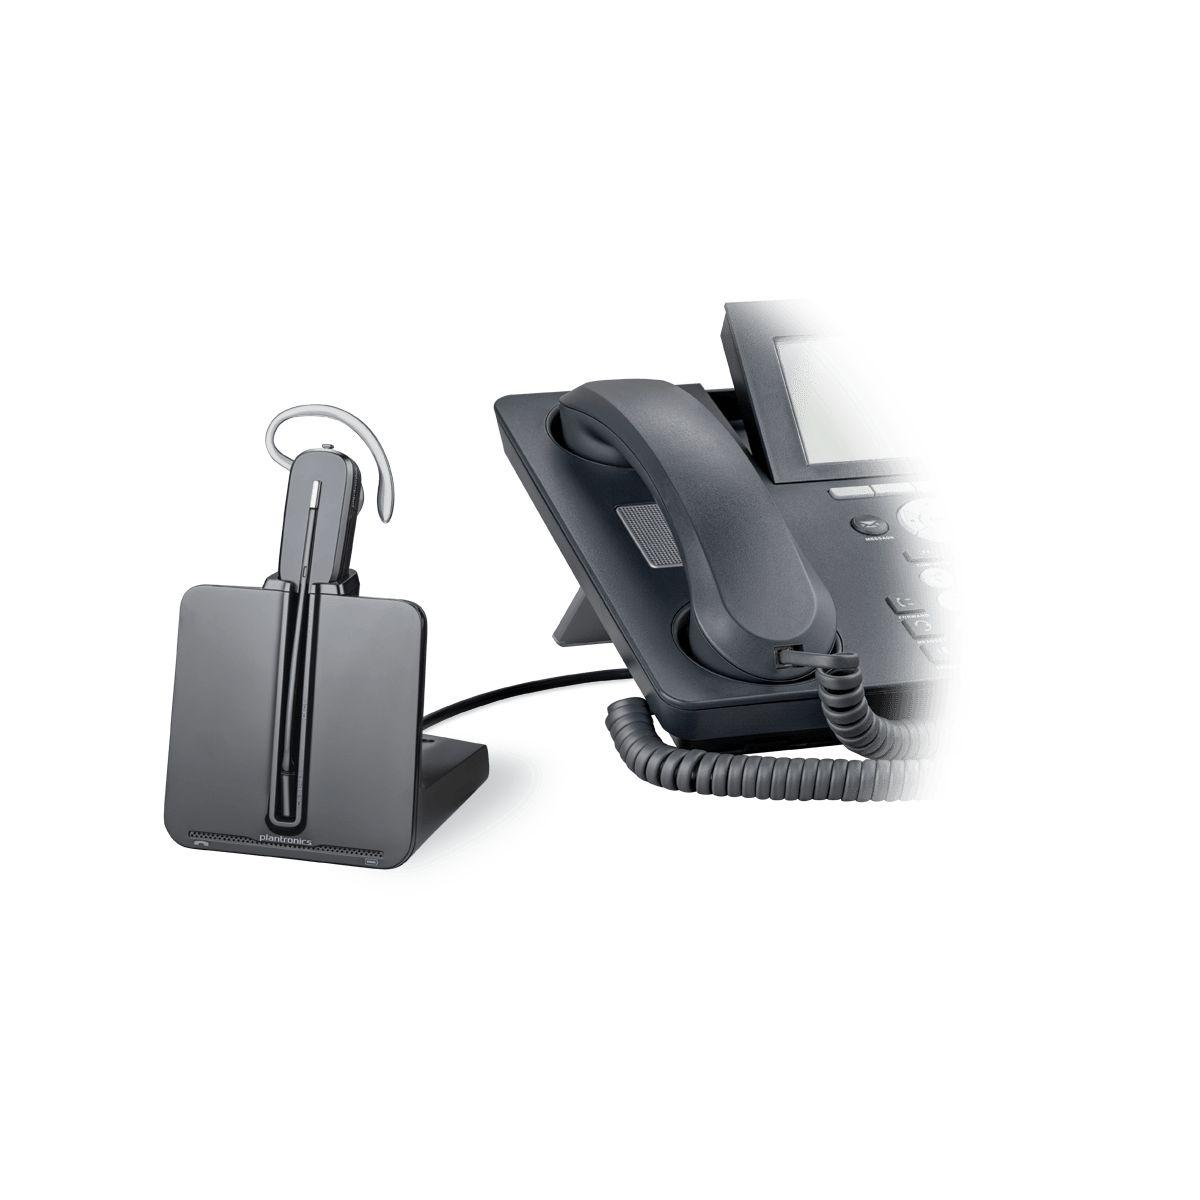 Casque micro t�l�phone fixe plantronics cs540a apa-23 conv emea - 2% de remise imm�diate avec le code : school2 (photo)